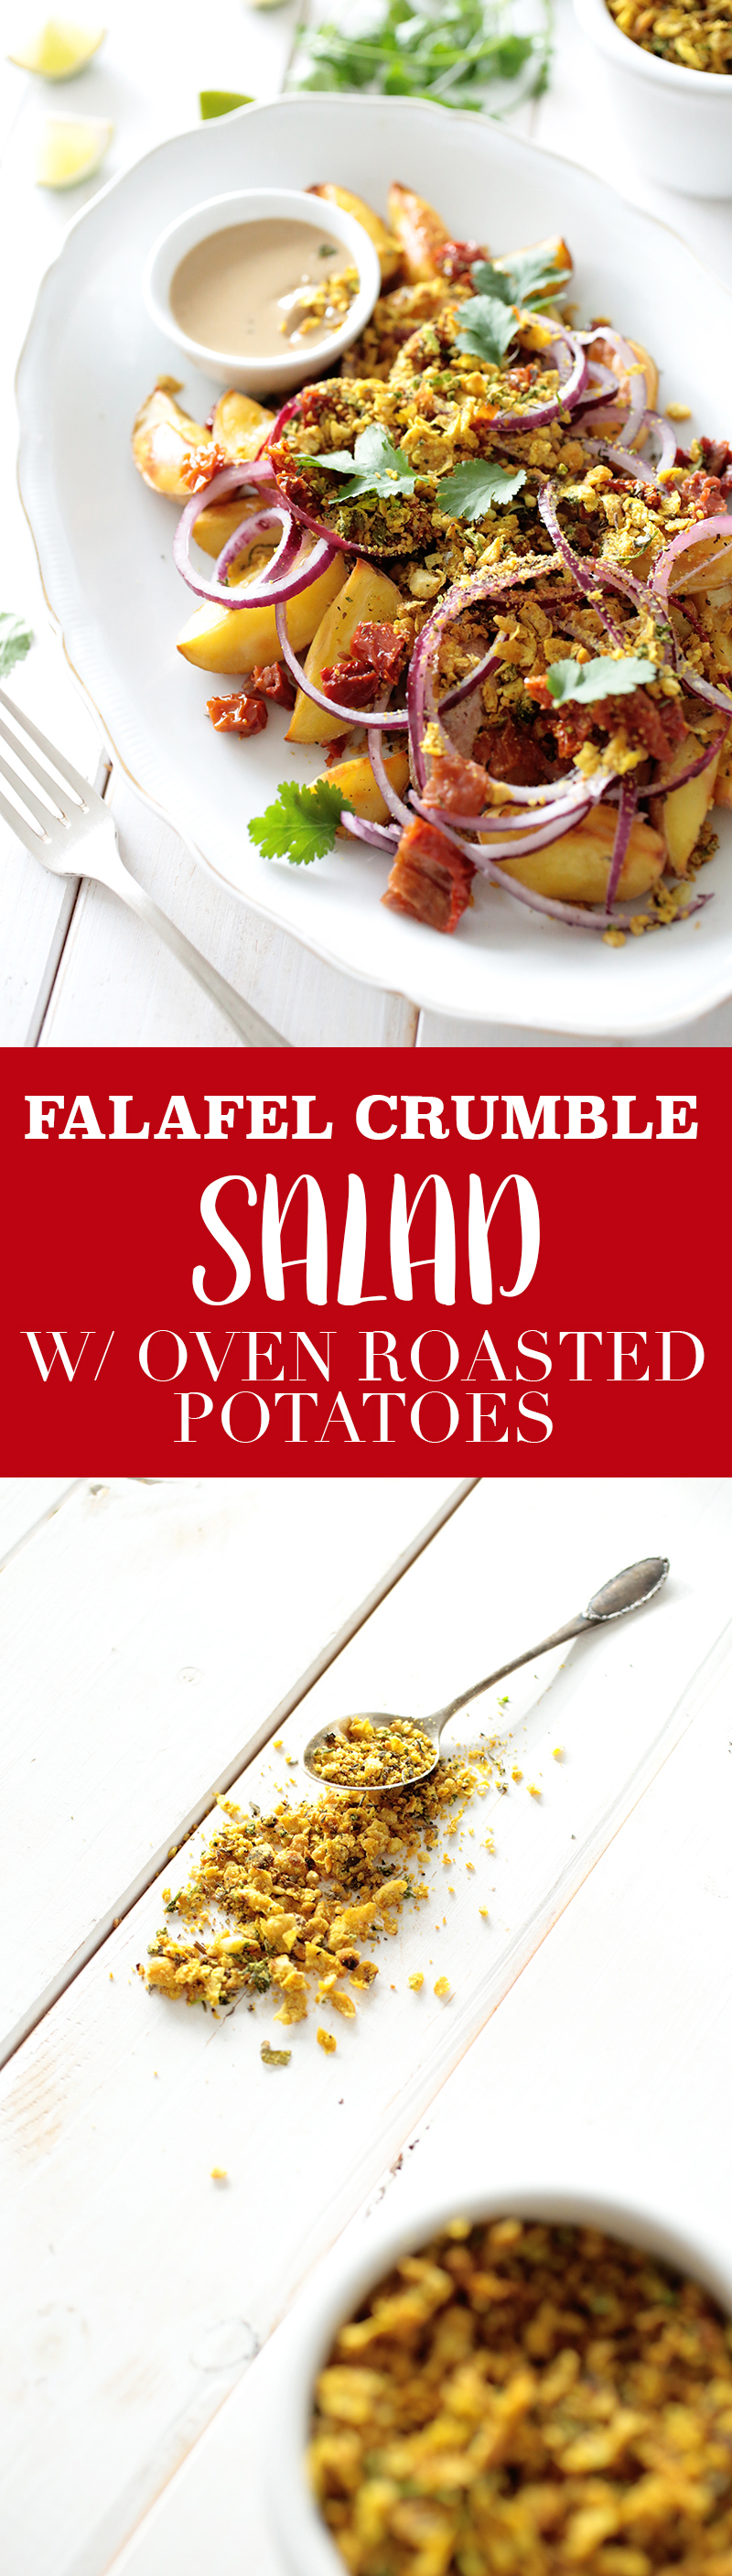 Potato and Falafel Crumble Salad